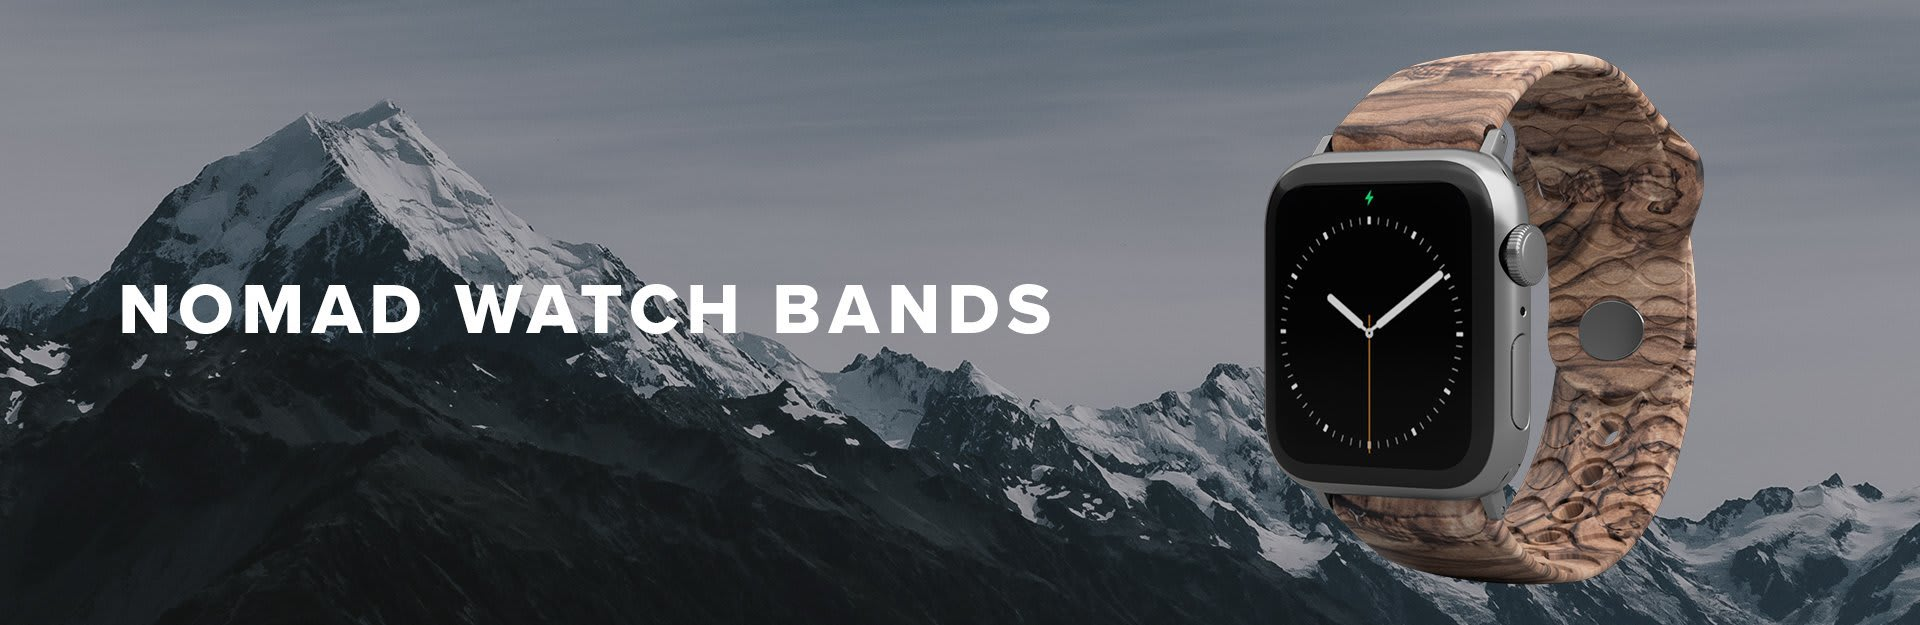 Nomad Watch Bands, burled walnut watch band overlaid on snowy mountains